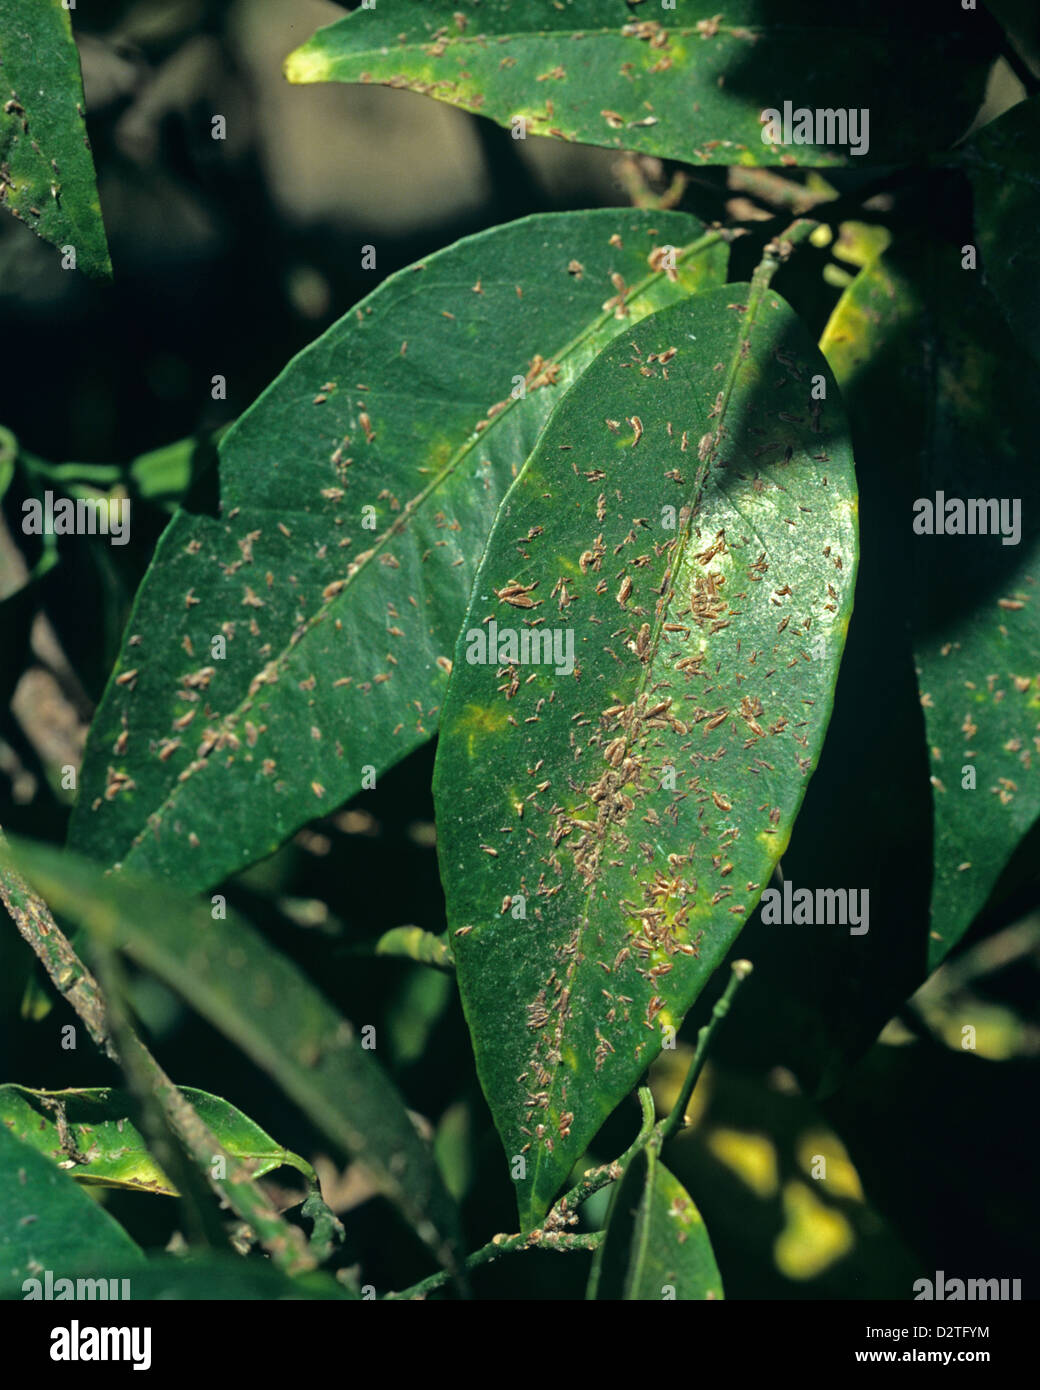 Citrus mussel scale insects, Lepidosphes beckii, sucking pest insects on the leaves of an orange tree, Morocco - Stock Image